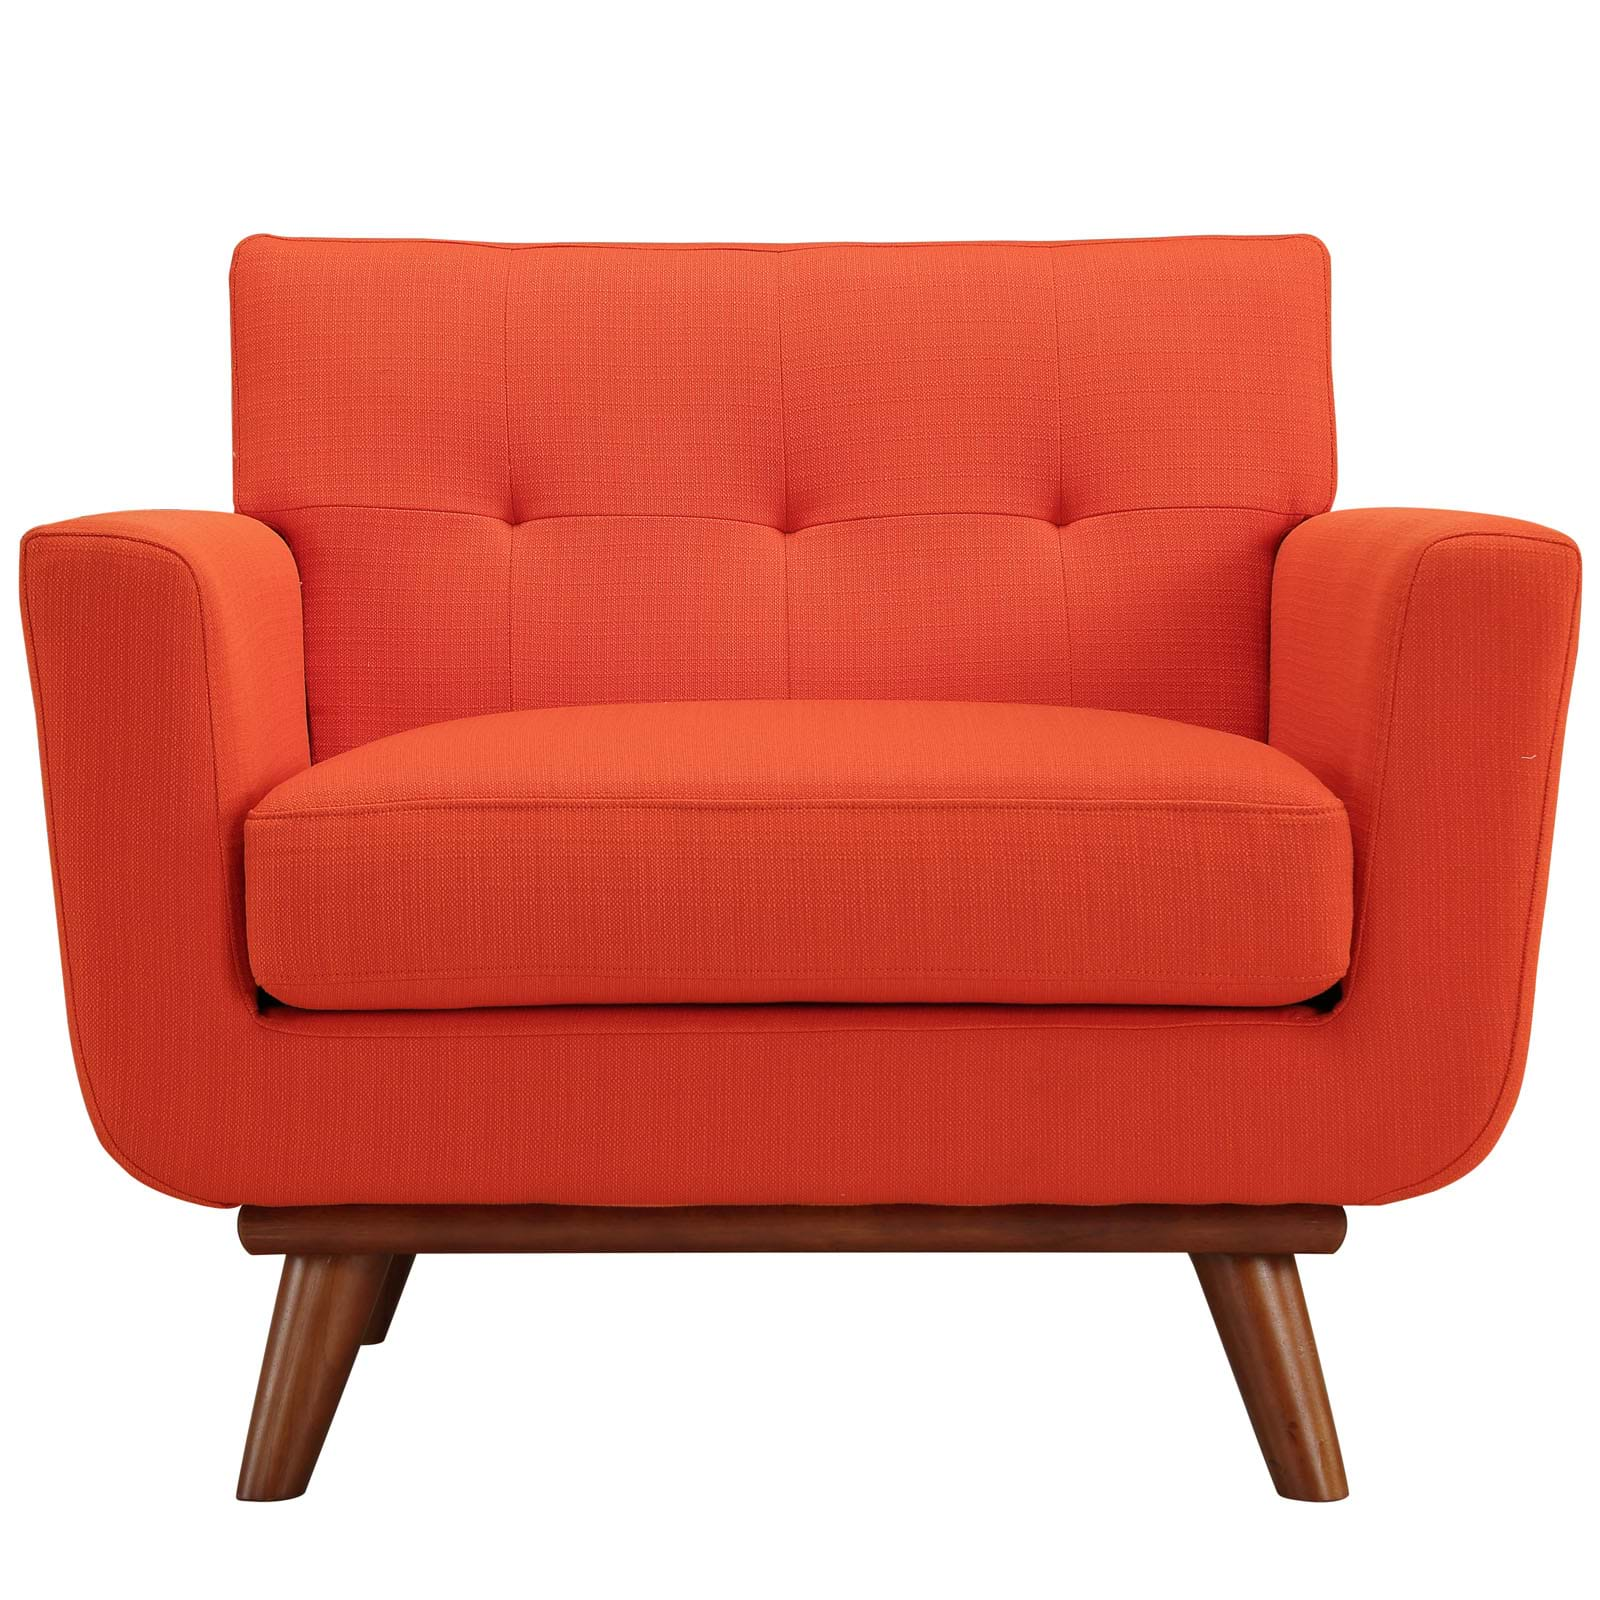 Engage Upholstered Armchair